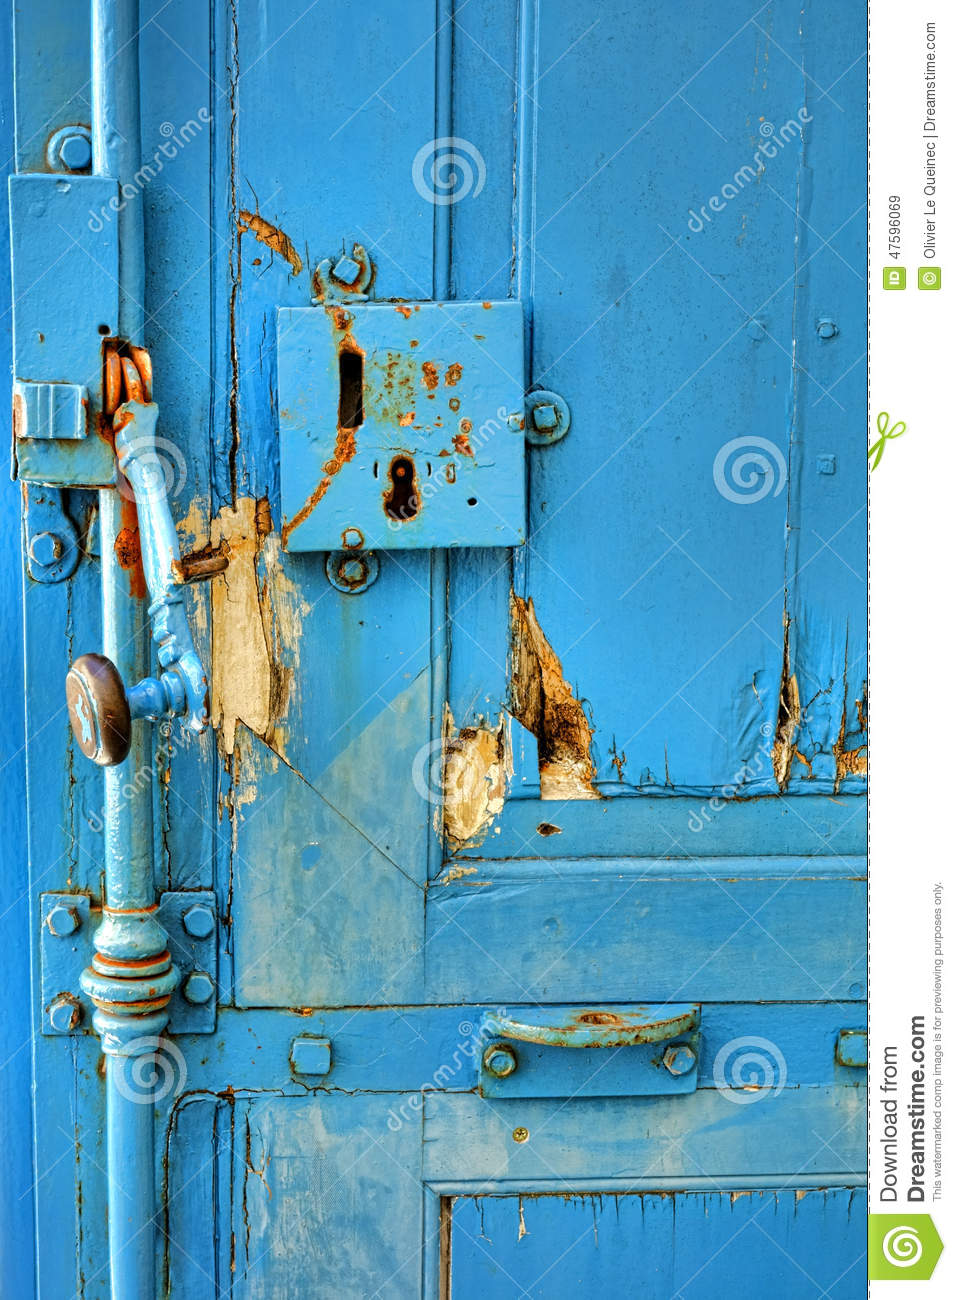 Antique Door Lock and Handle on a Vintage Doorway - Antique Door Lock And Handle On A Vintage Doorway Stock Image